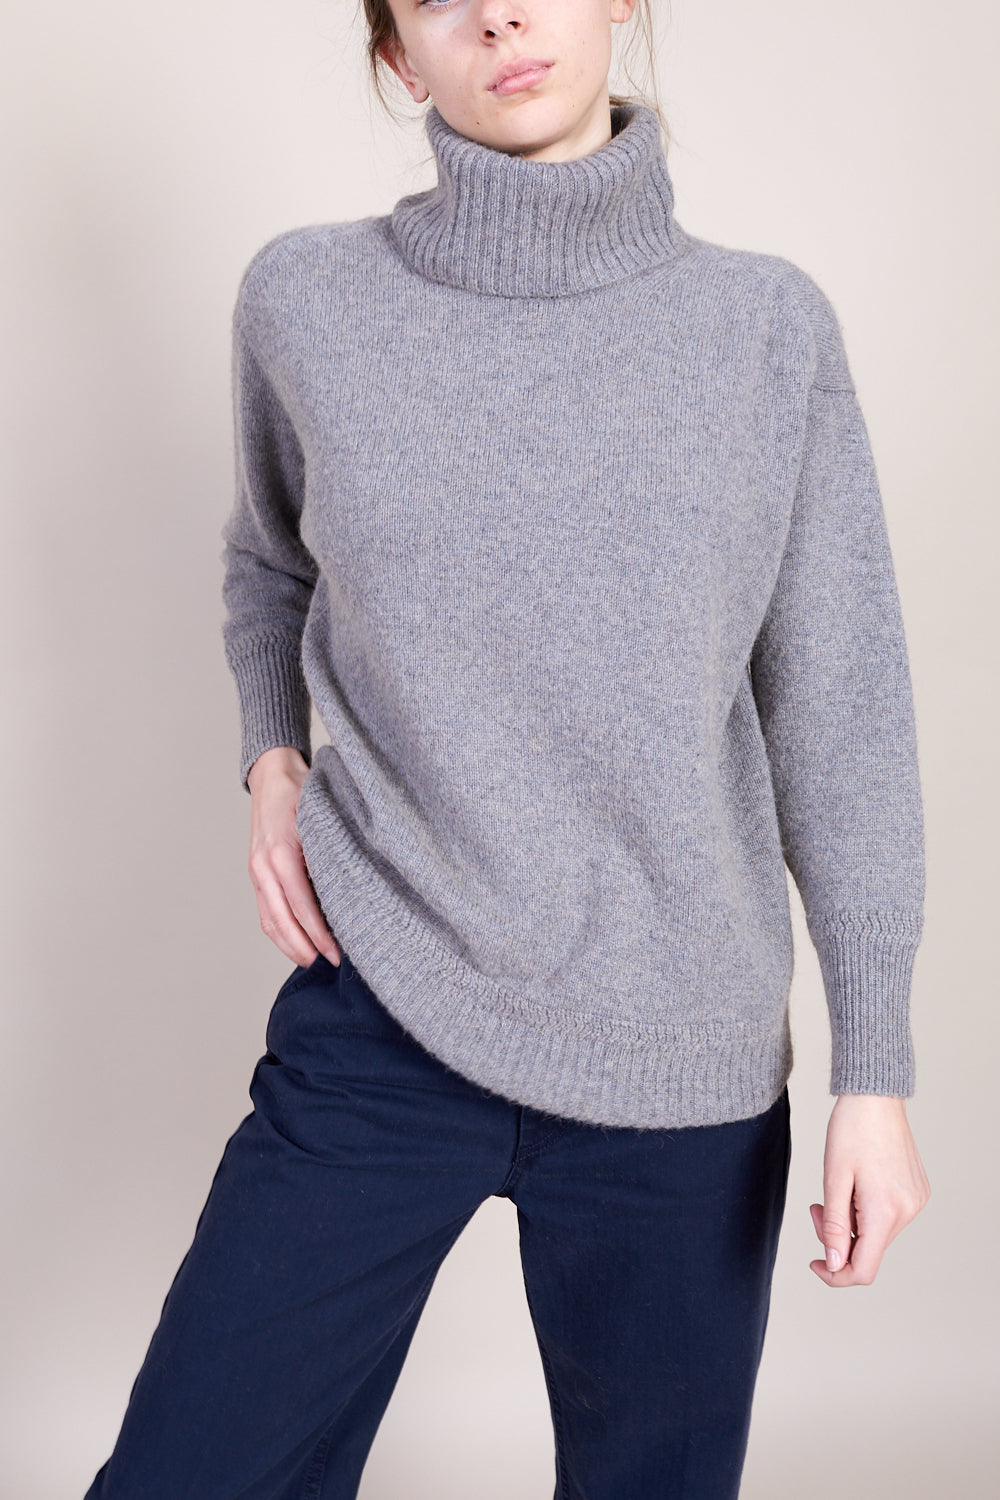 Turtleneck Pullover in Grey